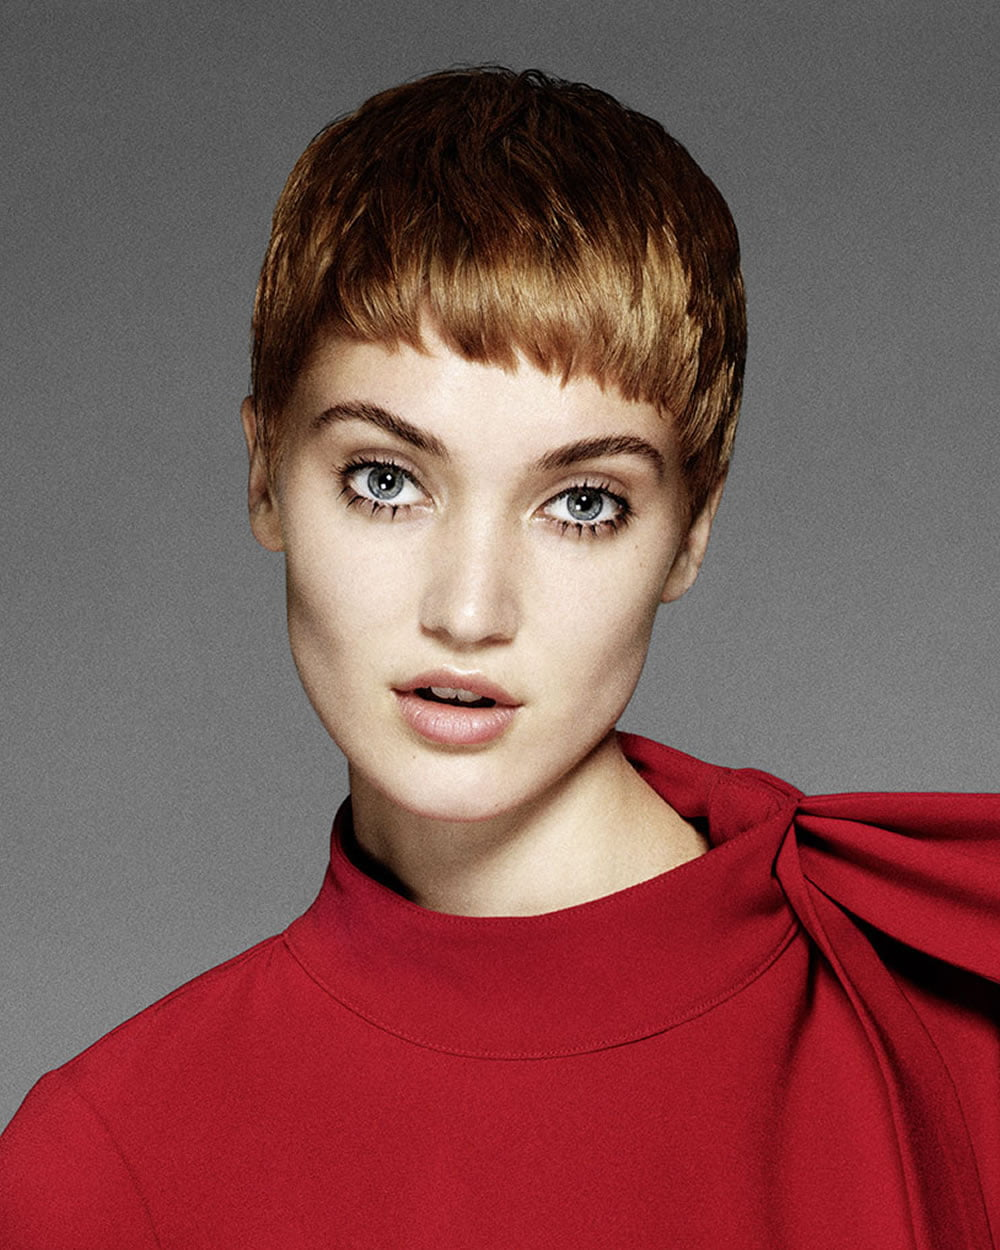 Short Hairstyles: The Best Short Pixie Haircuts And Hairstyle Images For